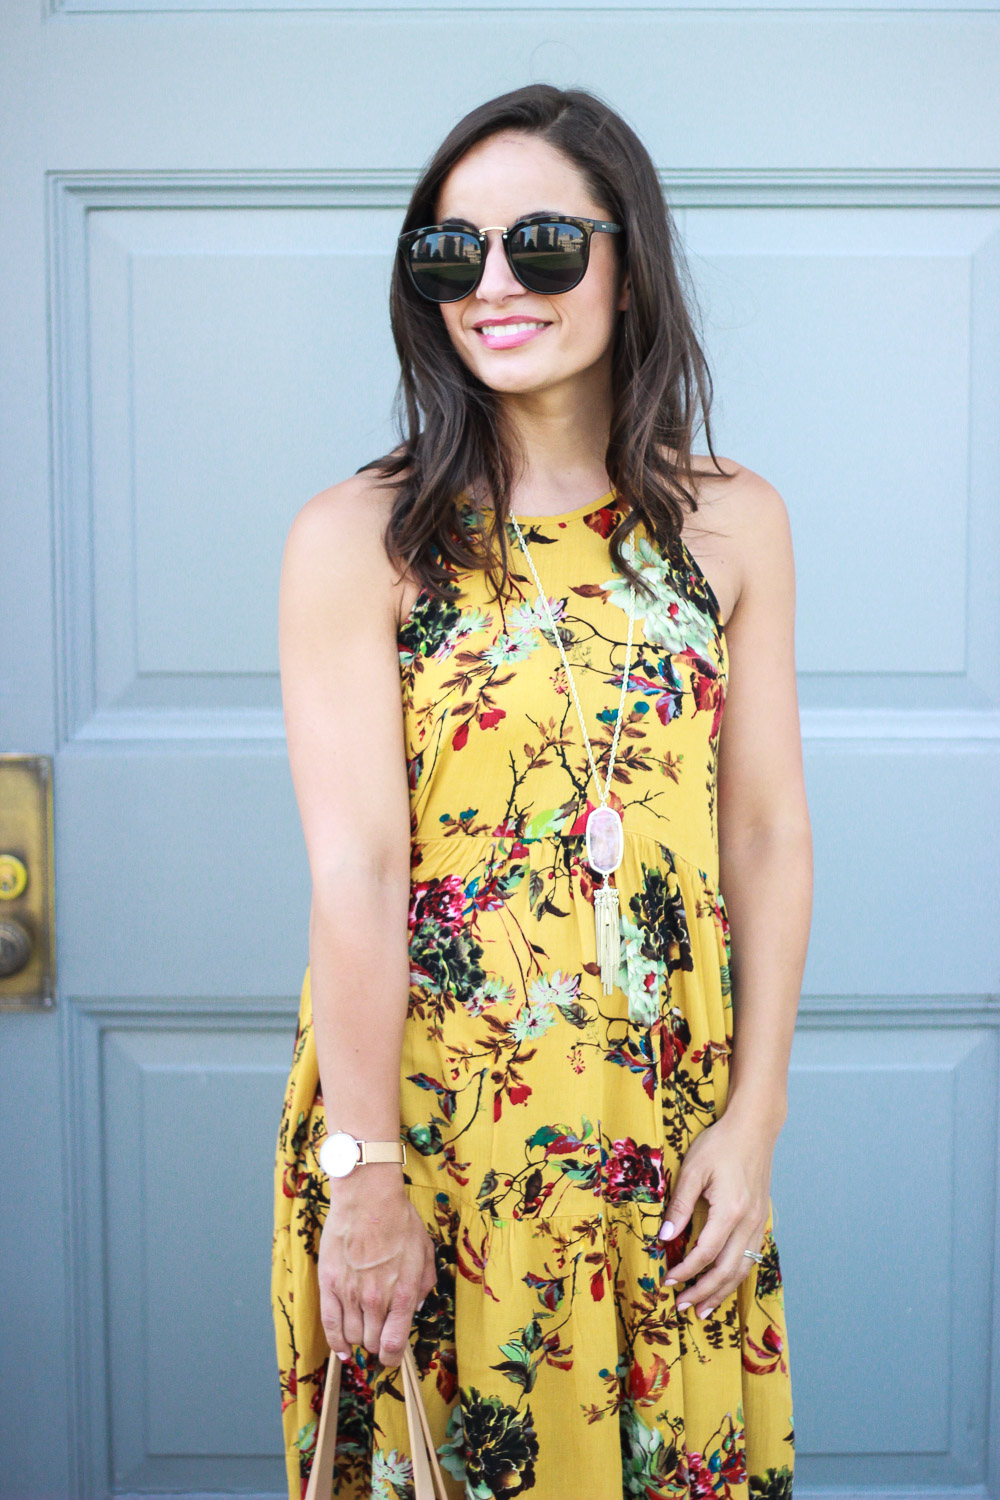 Boho outfit, floral dress